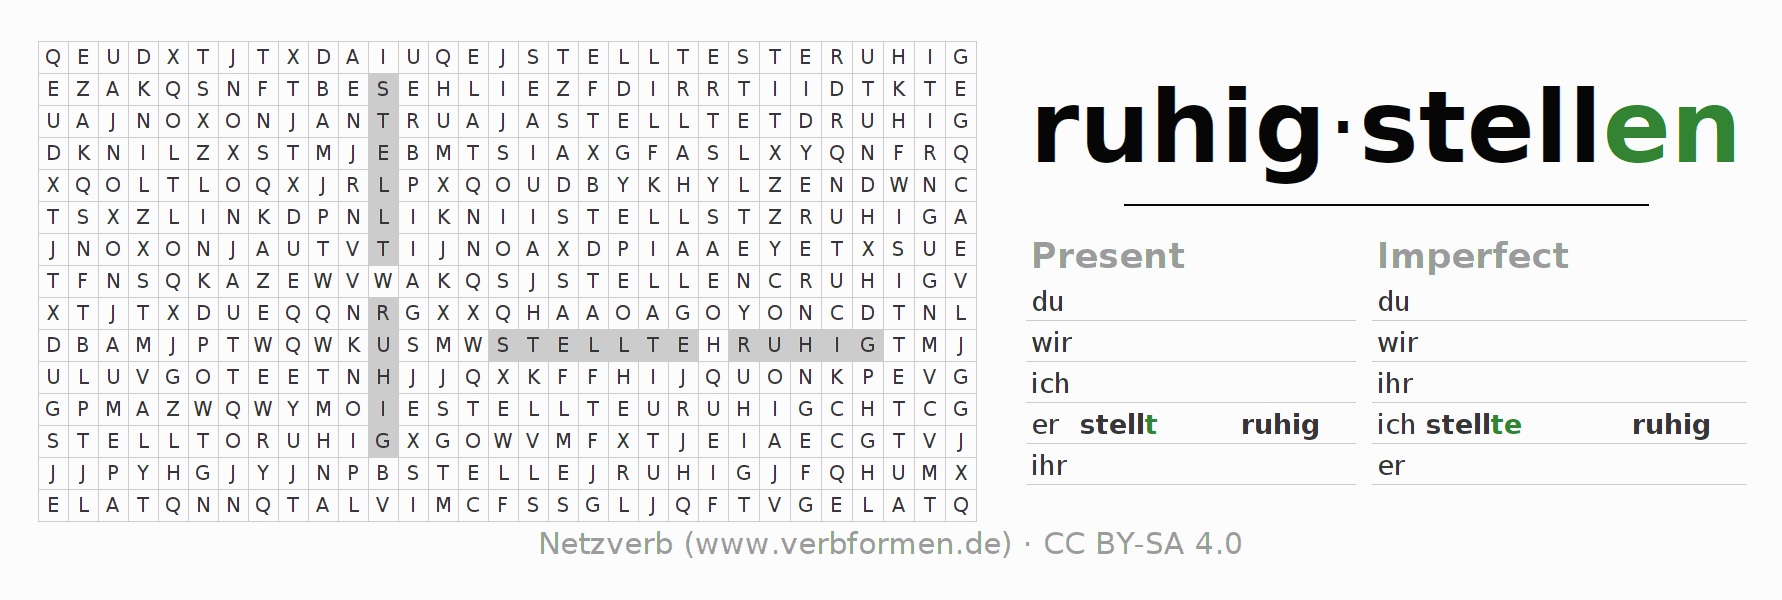 Word search puzzle for the conjugation of the verb ruhigstellen